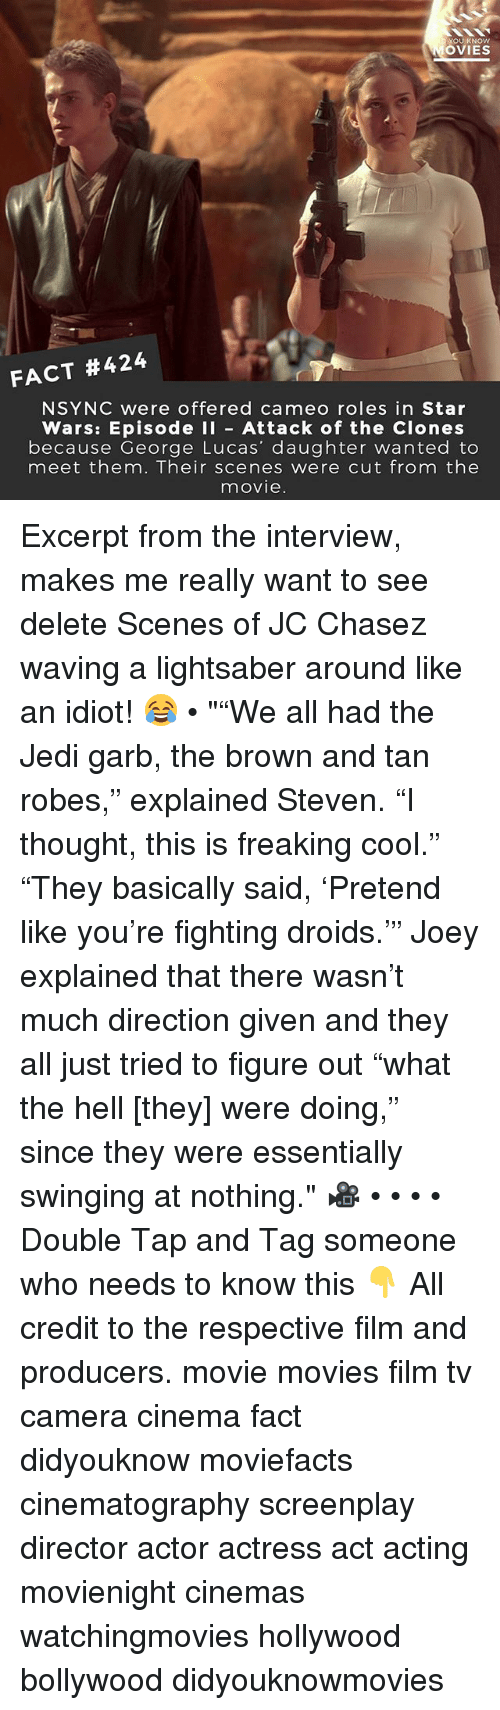 """Filmes: OU KNOW  OVIES  FACT #424  NSYNC were offered cameo roles in Star  Wars: Episode I Attack of the Clones  because George Lucas' daughter wanted to  meet them. Their scenes were cut from the  movie Excerpt from the interview, makes me really want to see delete Scenes of JC Chasez waving a lightsaber around like an idiot! 😂 • """"""""We all had the Jedi garb, the brown and tan robes,"""" explained Steven. """"I thought, this is freaking cool."""" """"They basically said, 'Pretend like you're fighting droids.'"""" Joey explained that there wasn't much direction given and they all just tried to figure out """"what the hell [they] were doing,"""" since they were essentially swinging at nothing."""" 🎥 • • • • Double Tap and Tag someone who needs to know this 👇 All credit to the respective film and producers. movie movies film tv camera cinema fact didyouknow moviefacts cinematography screenplay director actor actress act acting movienight cinemas watchingmovies hollywood bollywood didyouknowmovies"""